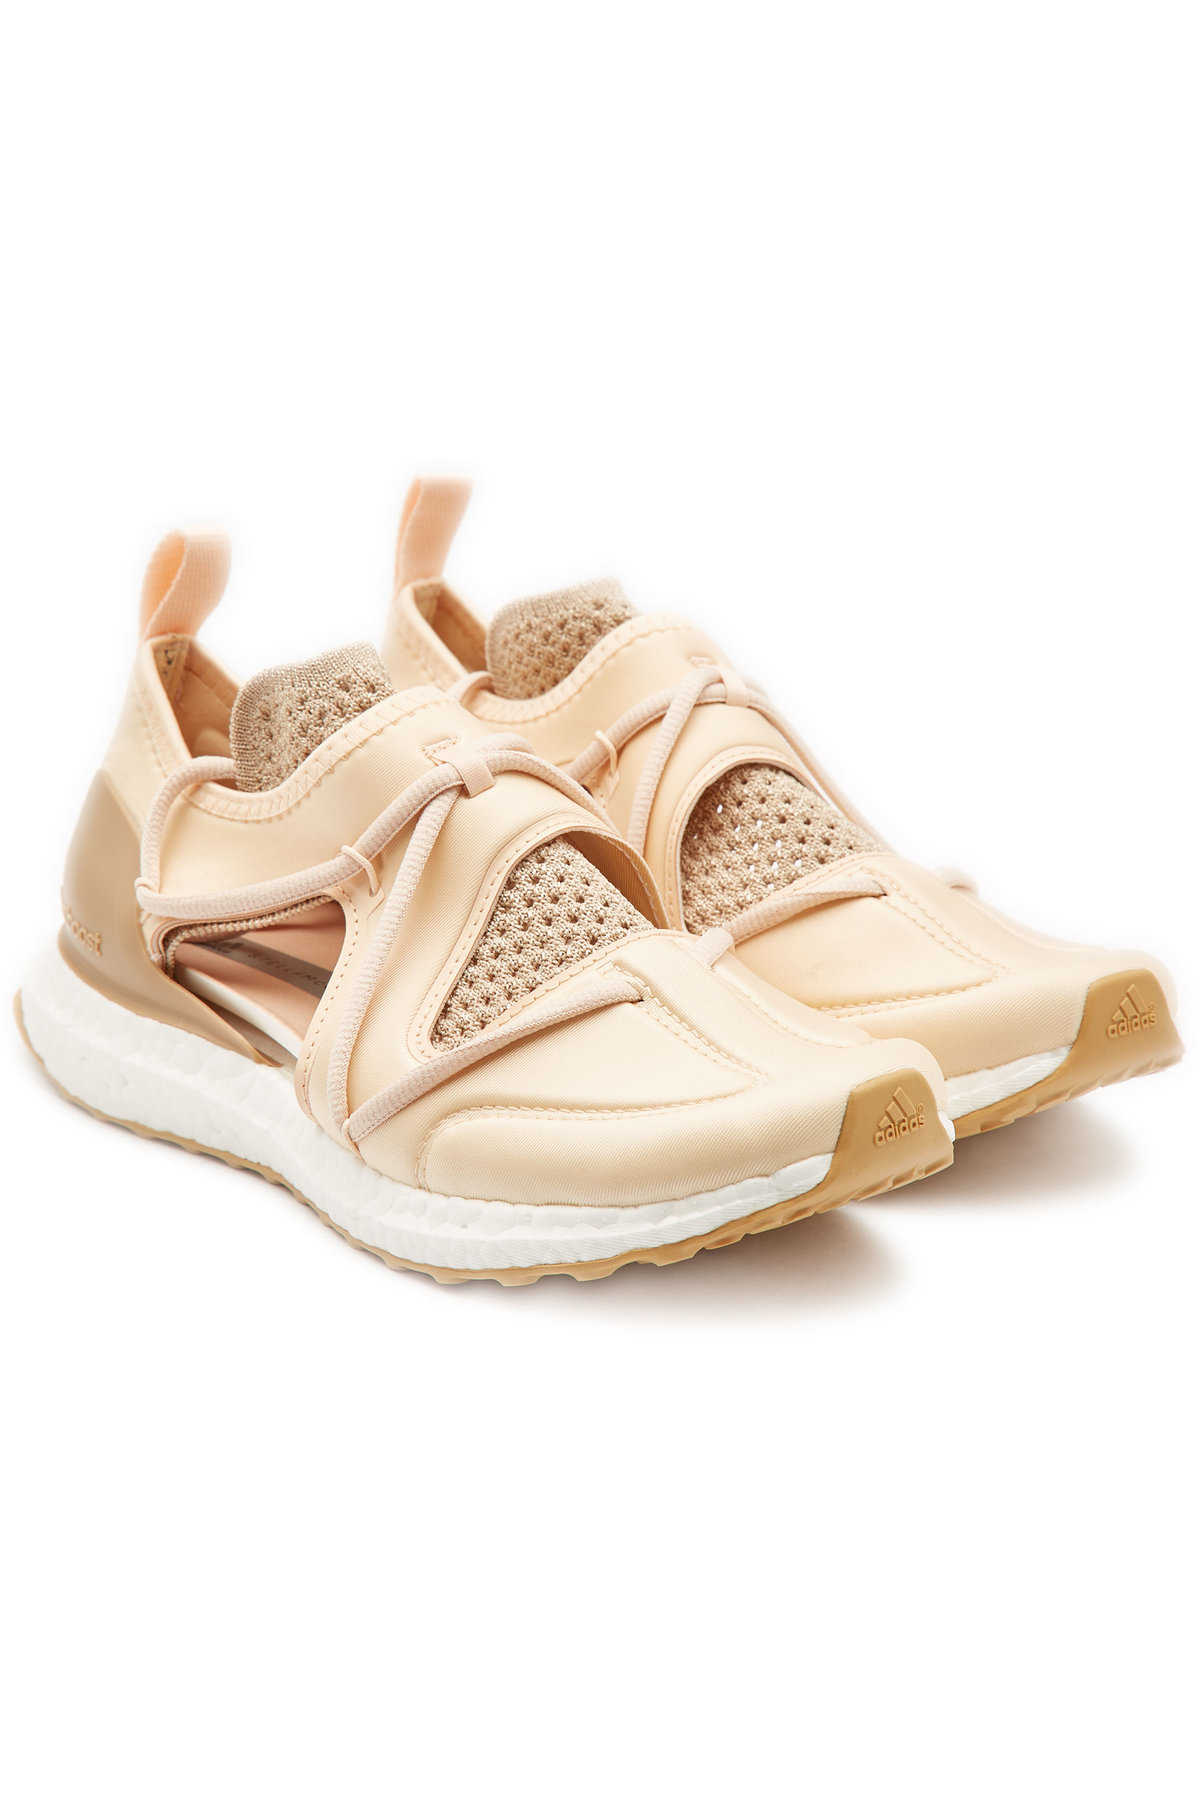 95454a07c Adidas by Stella McCartney Ultra Boost T. S. Sneakers GOOFASH 300009